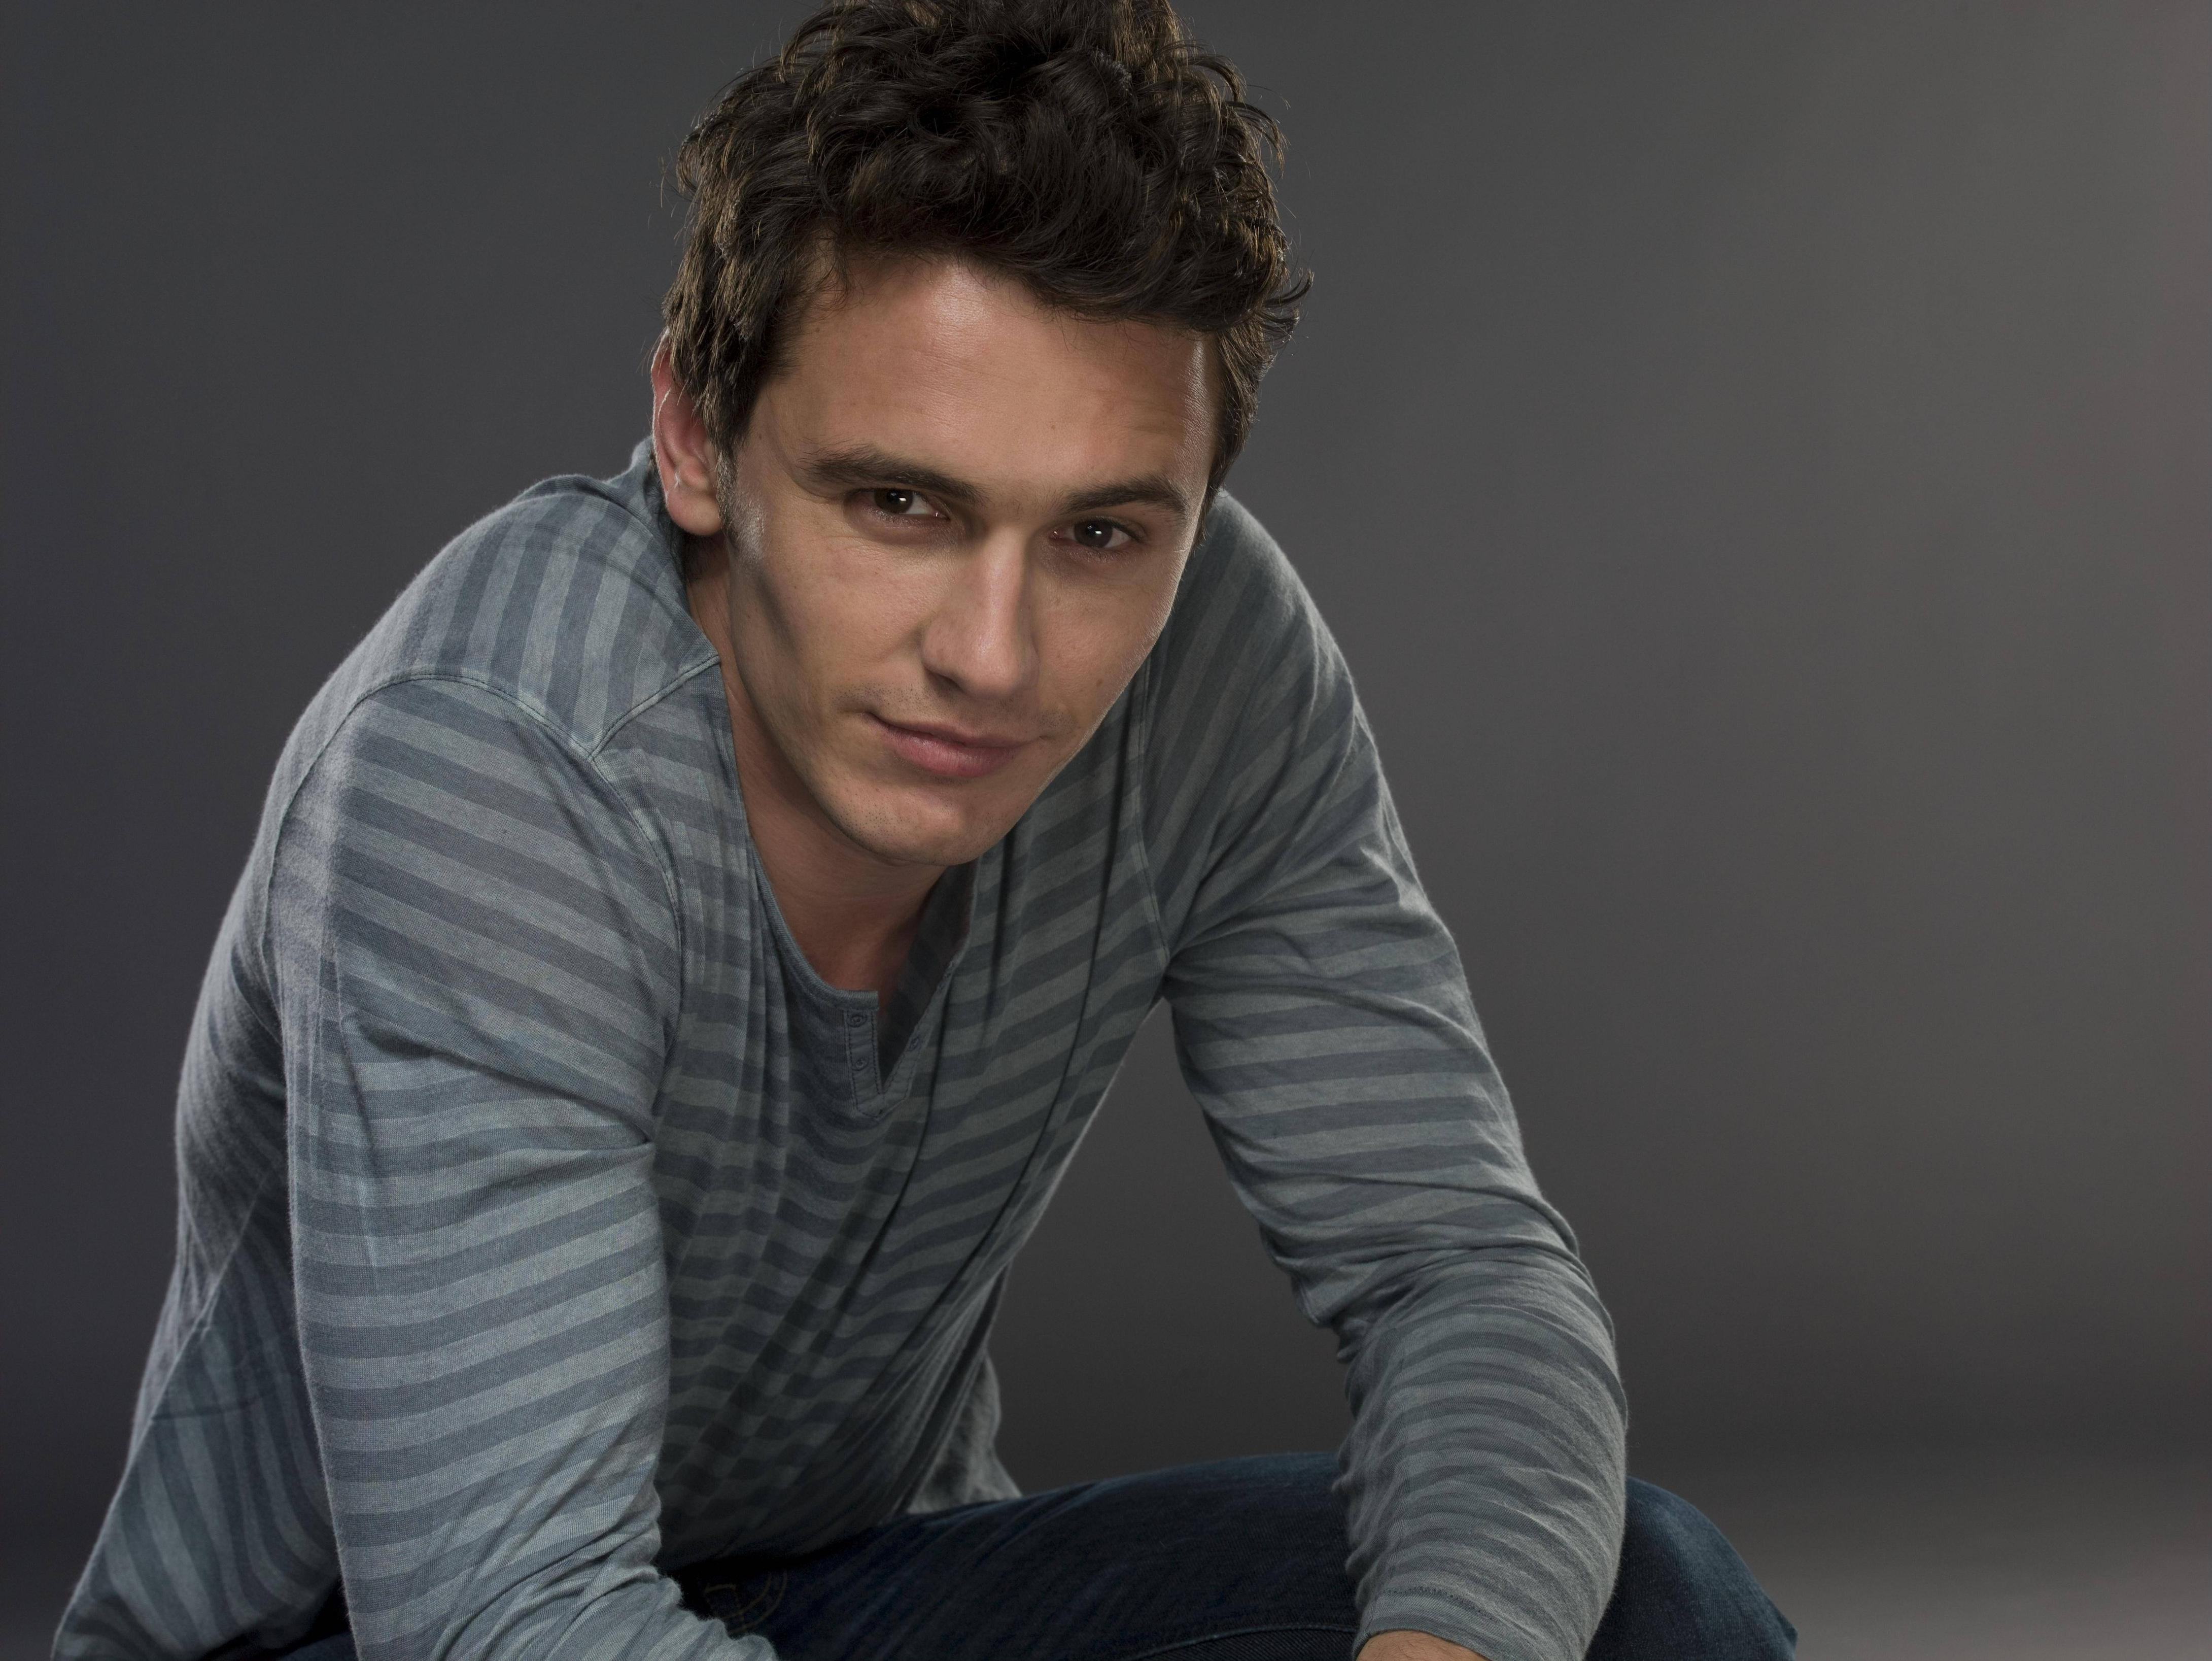 Wallpapers james franco, male, man, actor, car, glasses wallpapers